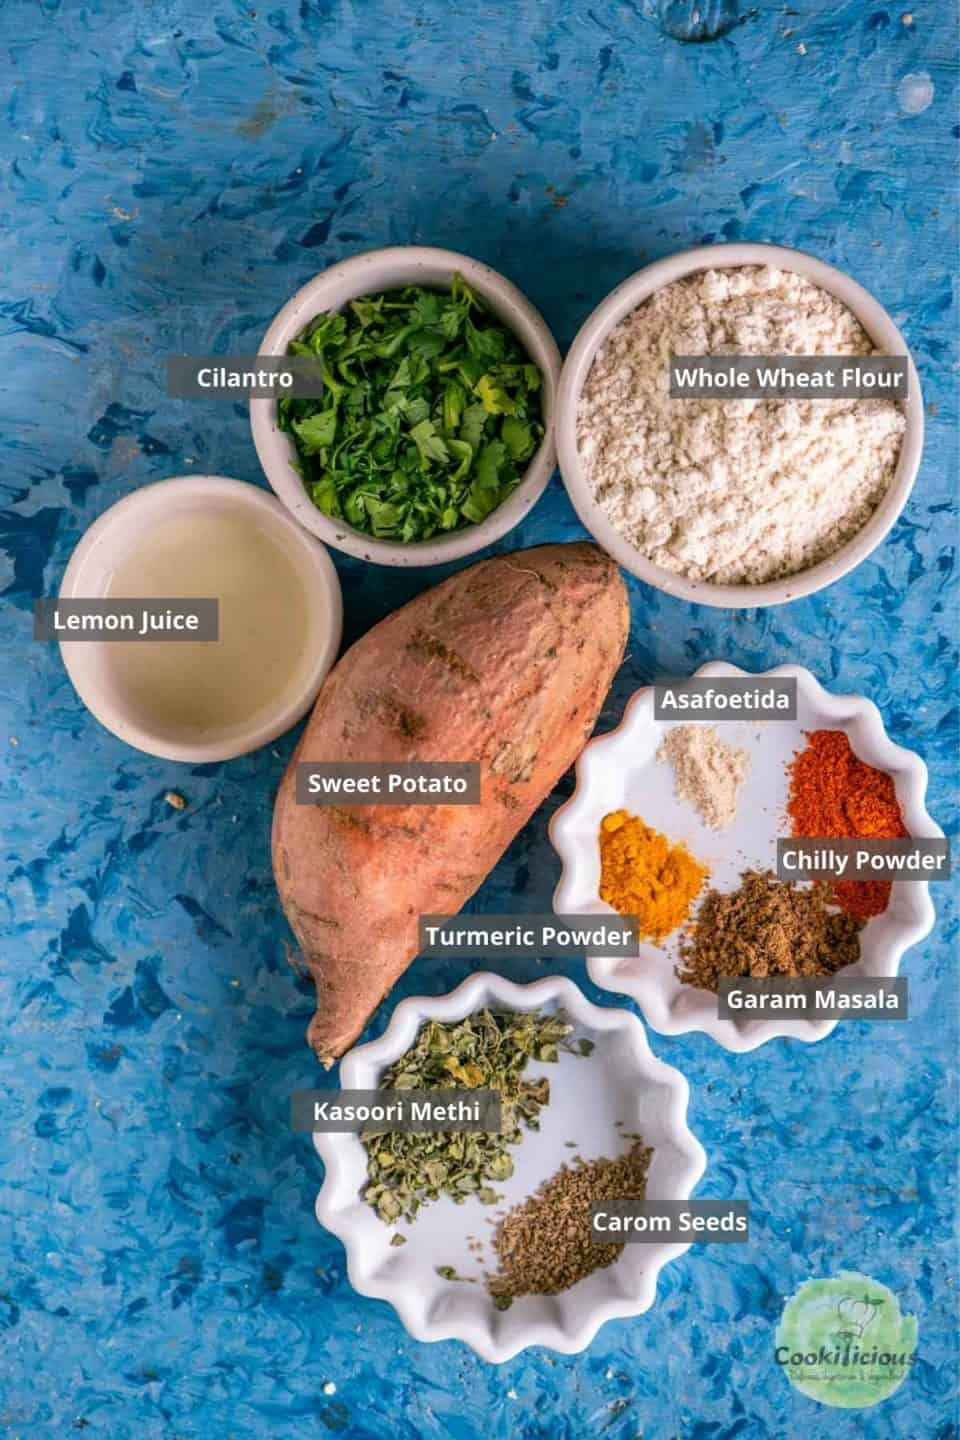 all the ingredients needed to make Sweet Potato Masala Puri on a table with labels on them